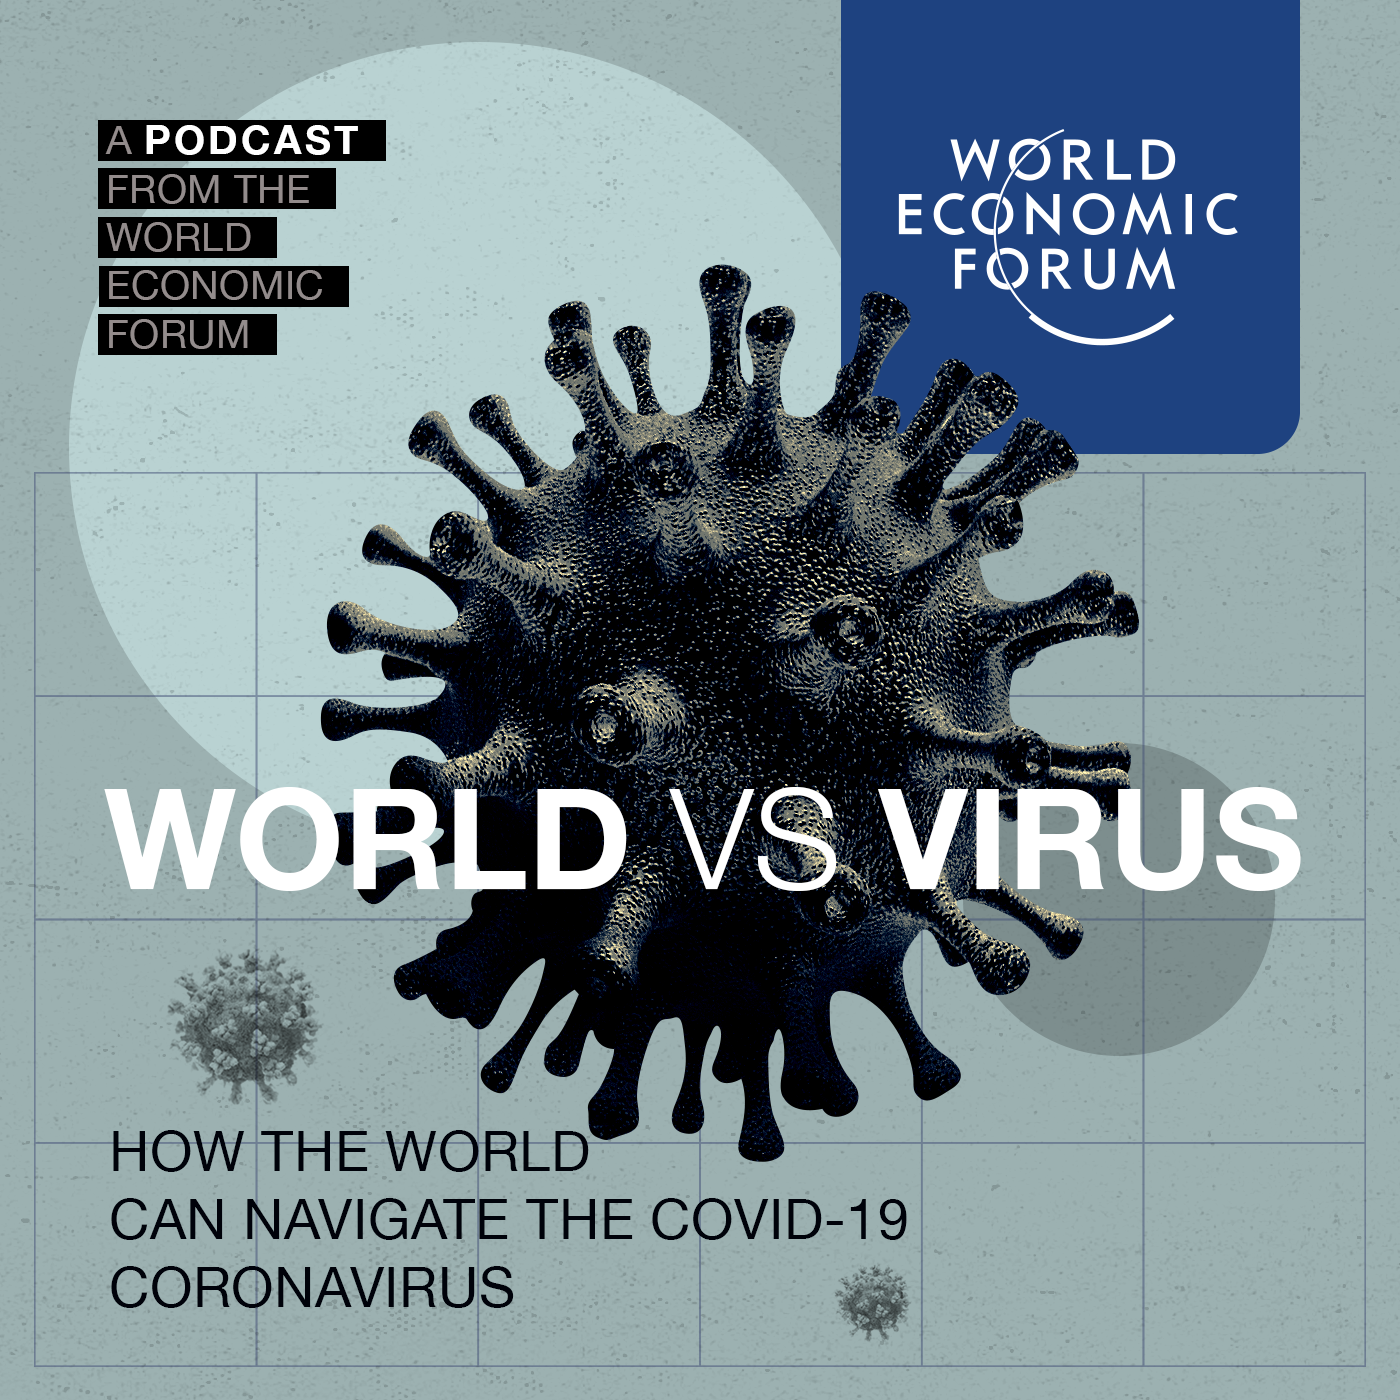 How can we vaccinate the world?